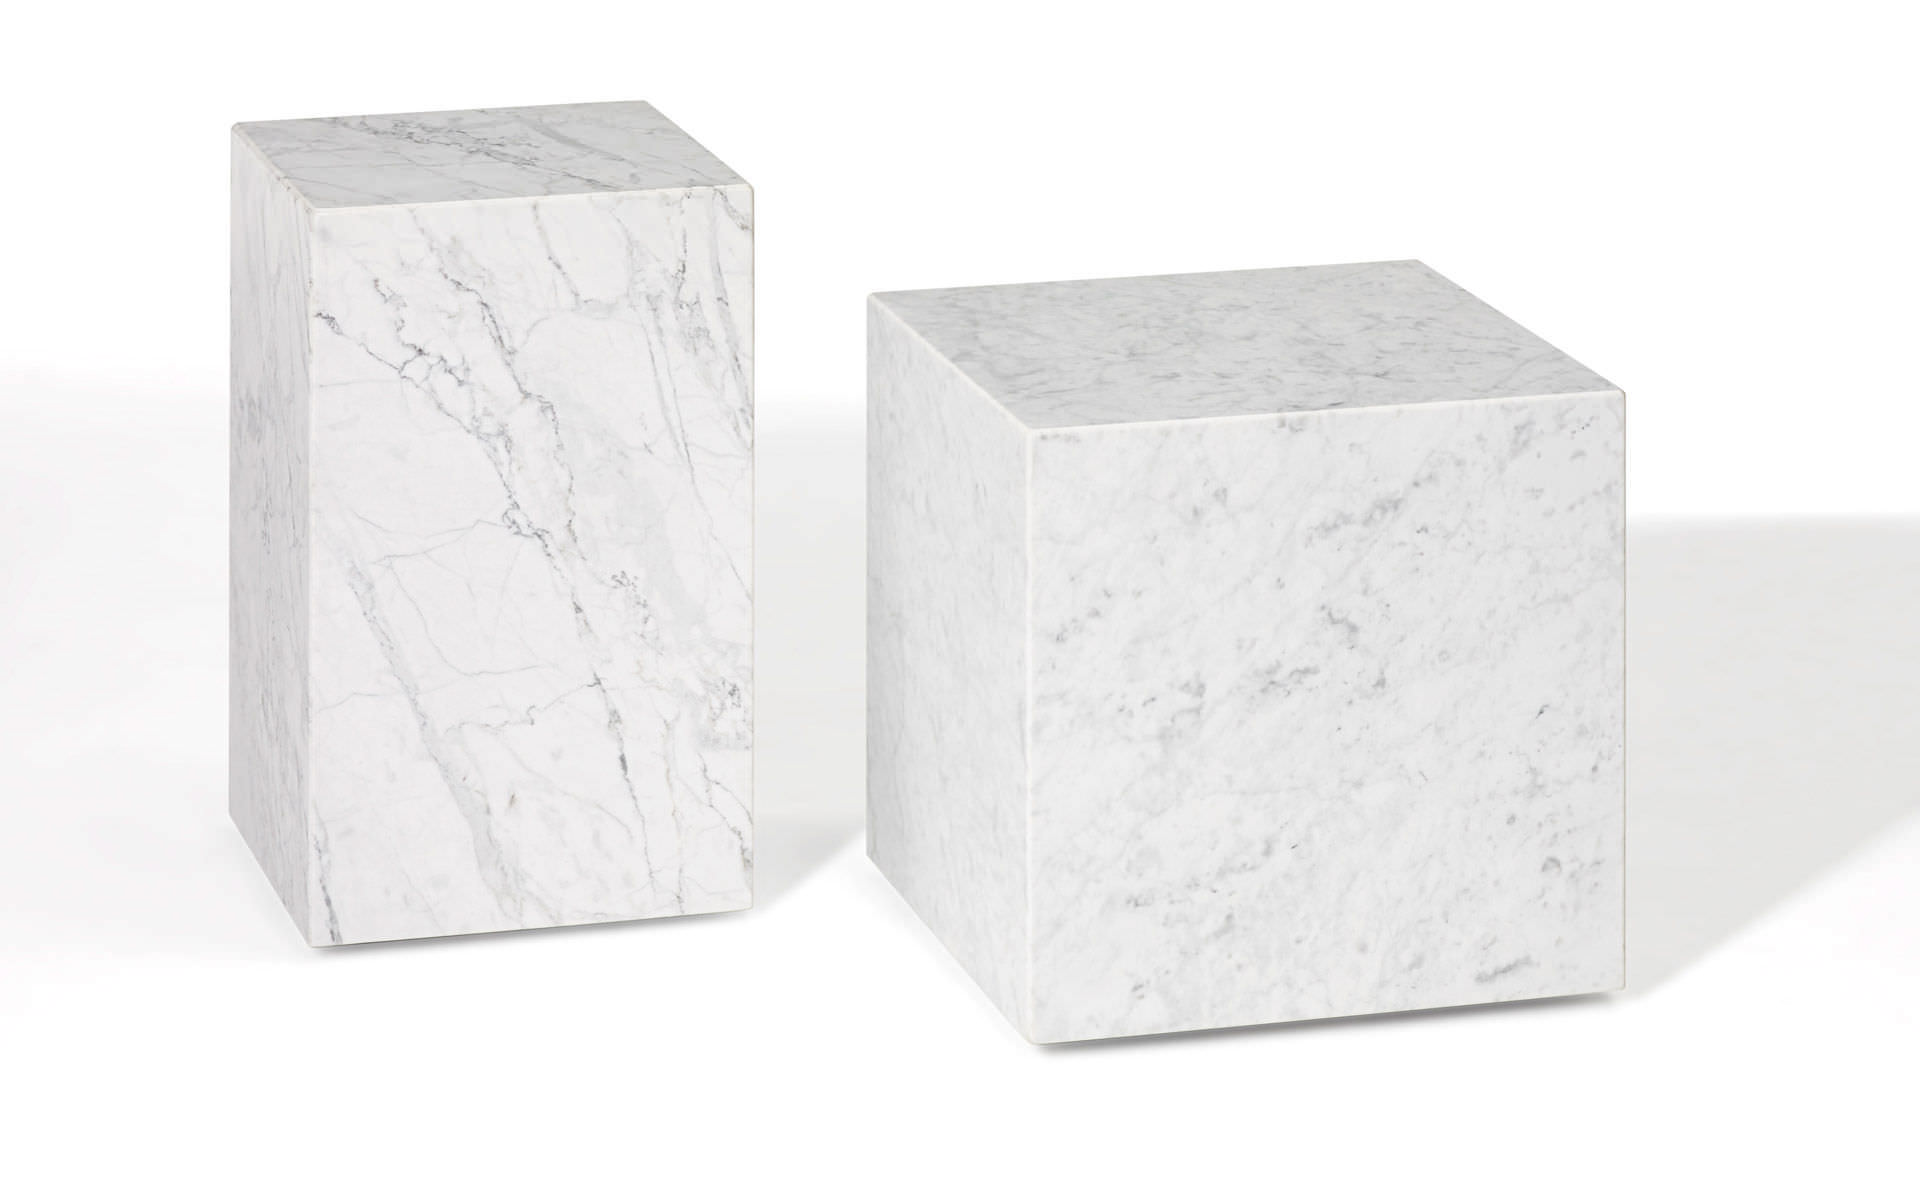 Contemporary Side Table / Natural Stone / Cube Shaped   1365 QBIC By Patric  Draenert 2014